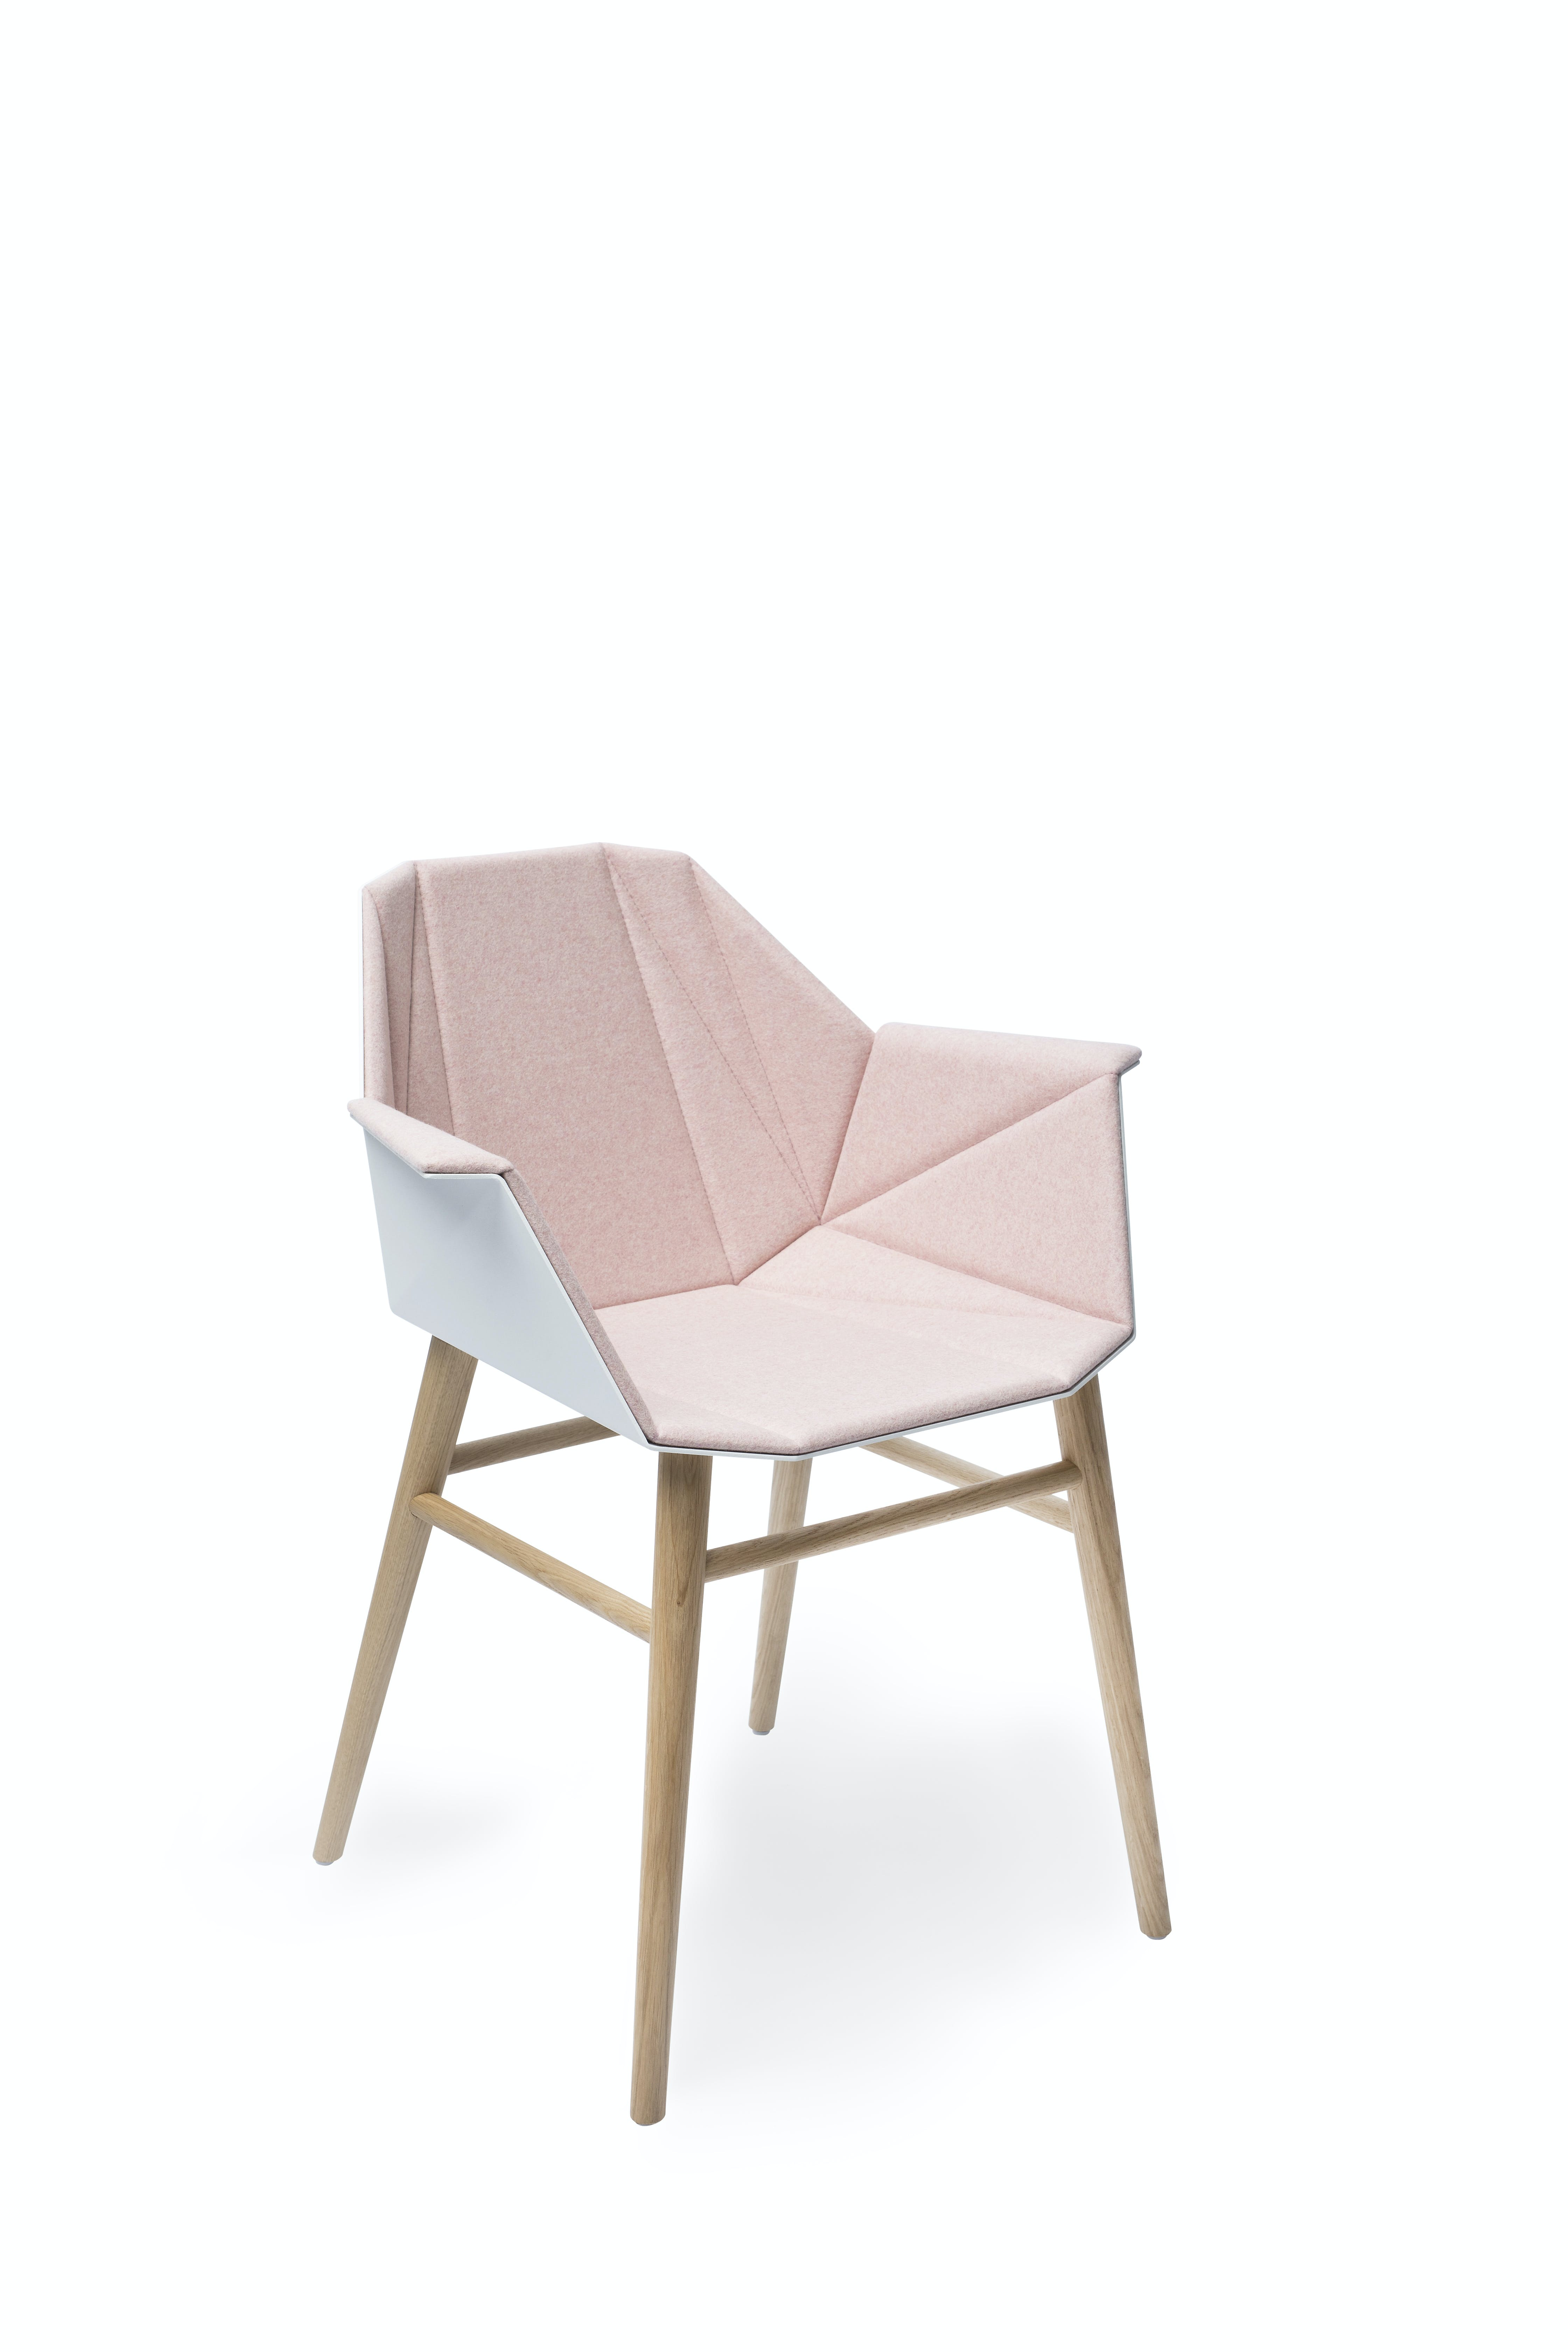 Alumni Wood White Pink Upholstered Side Angle